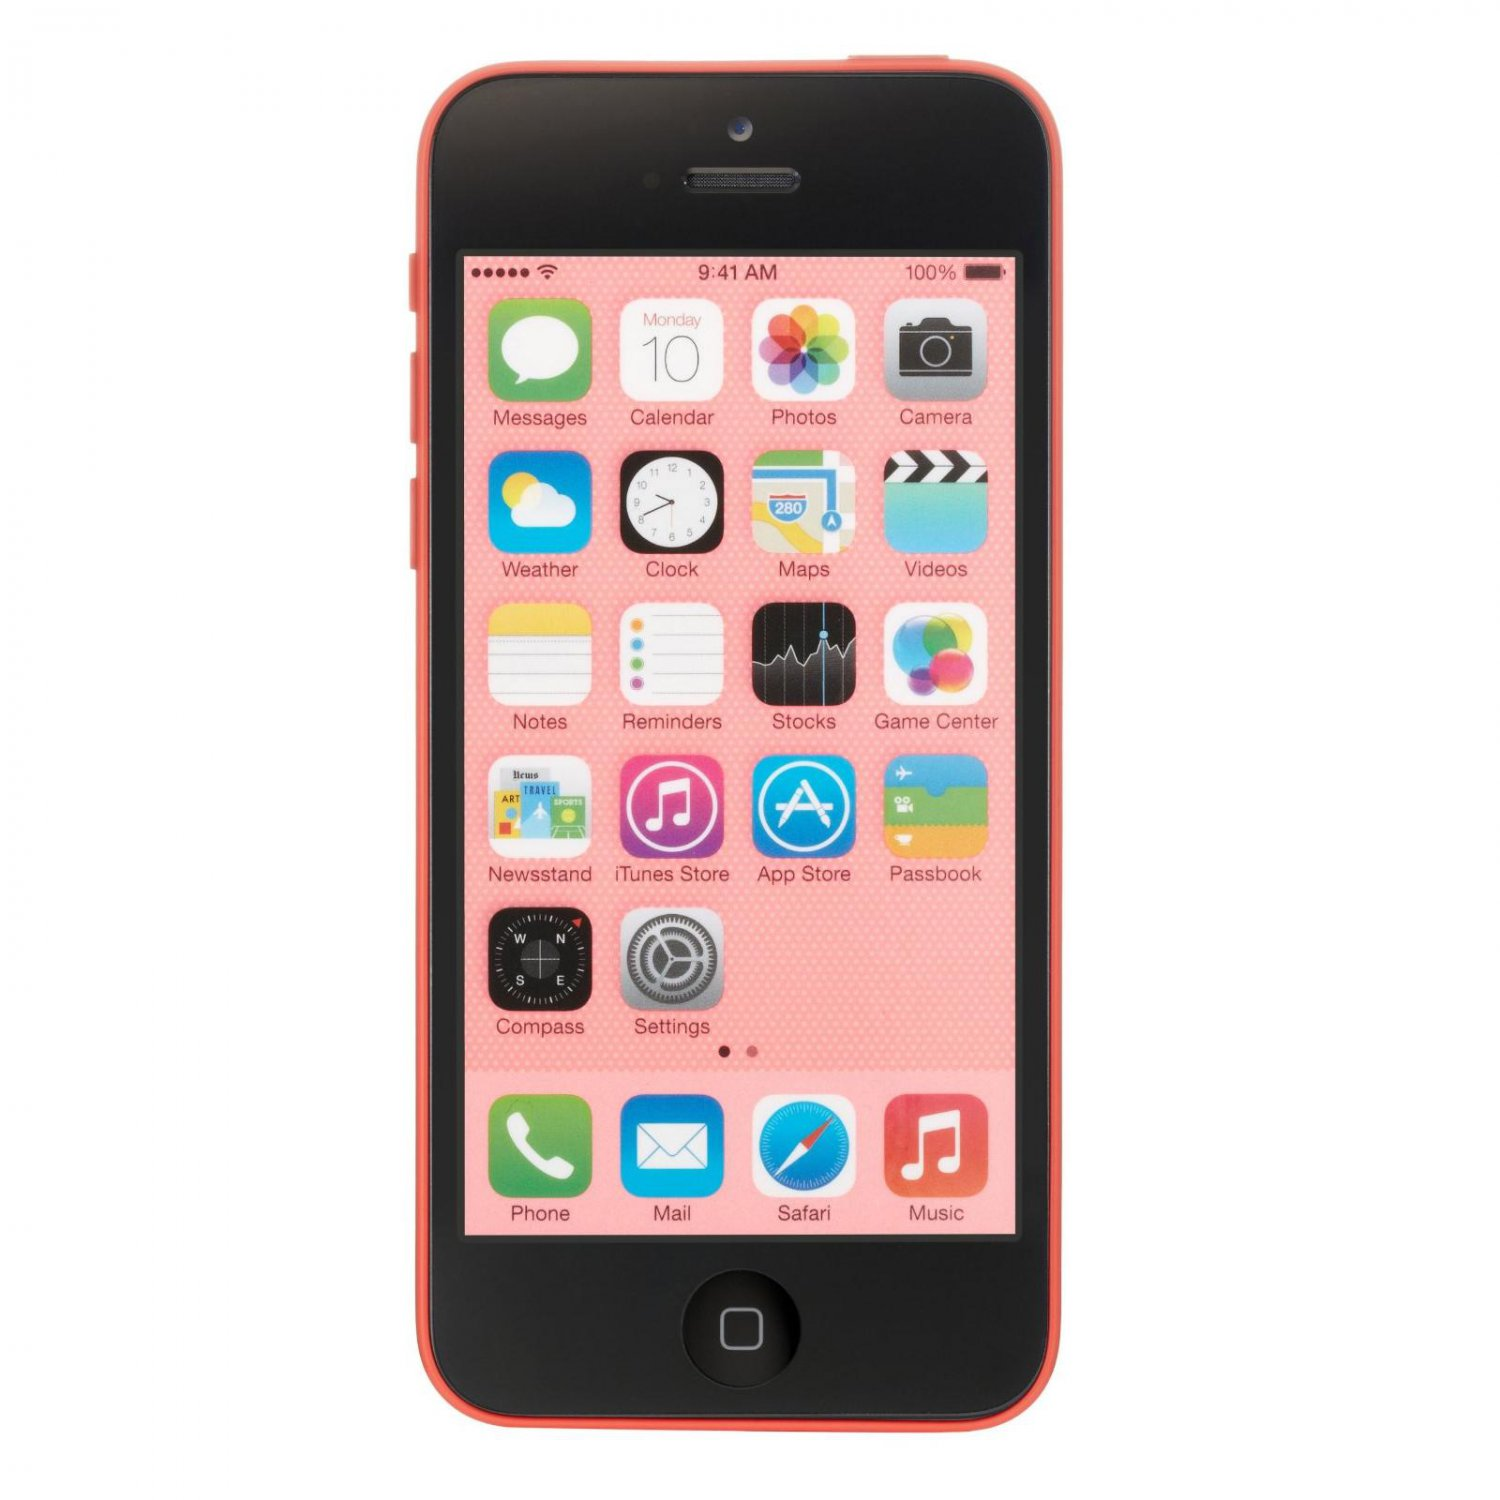 at t iphone 5c apple iphone 5c 8gb at amp t pink smartphone ios 8 gsm a1532 2535